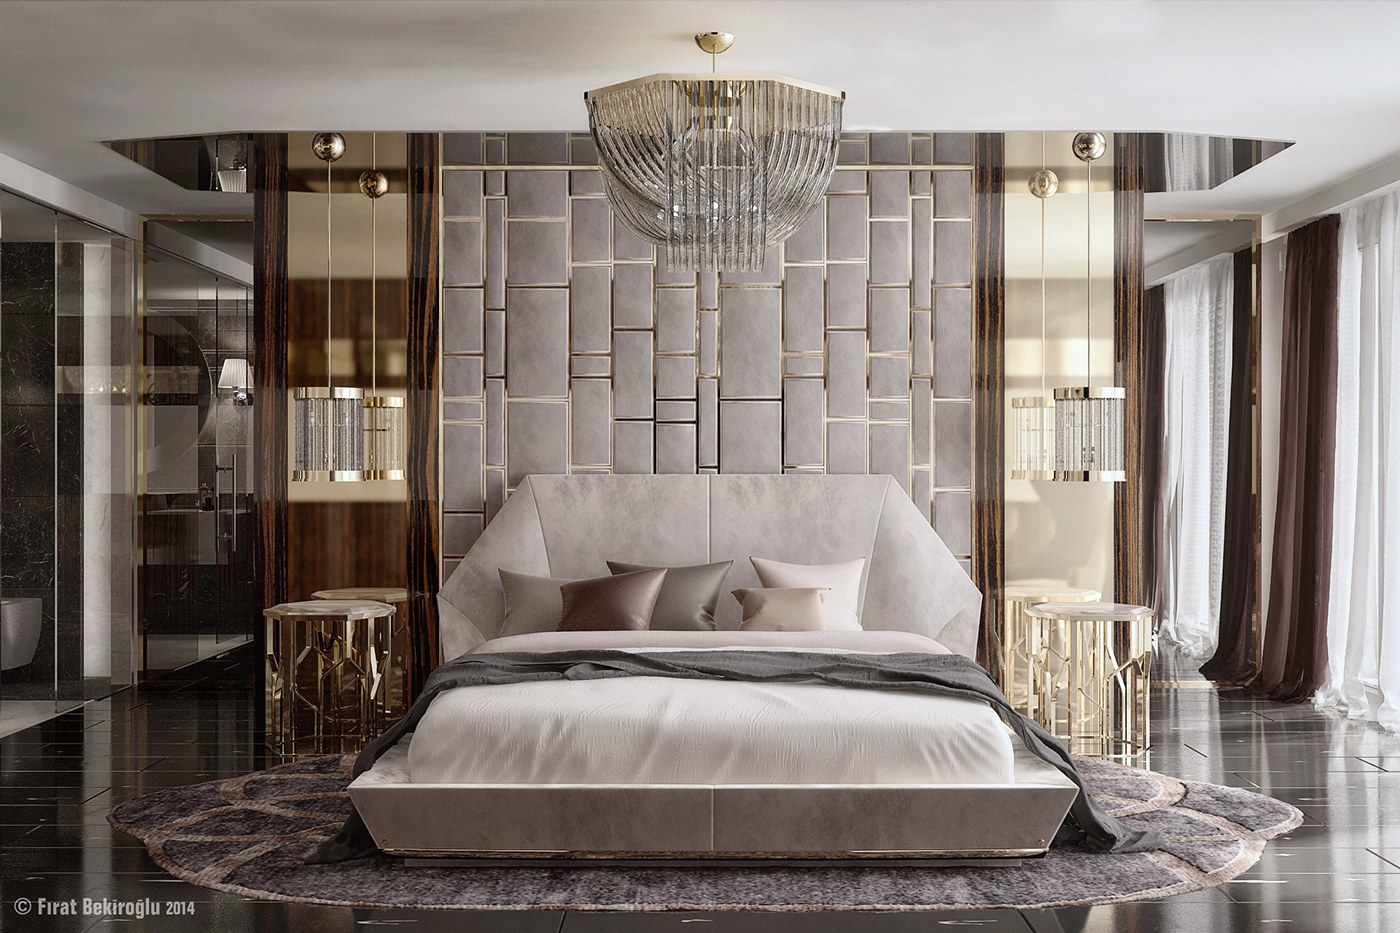 7 Stylish Bedrooms with Lots of Detail - photo#18